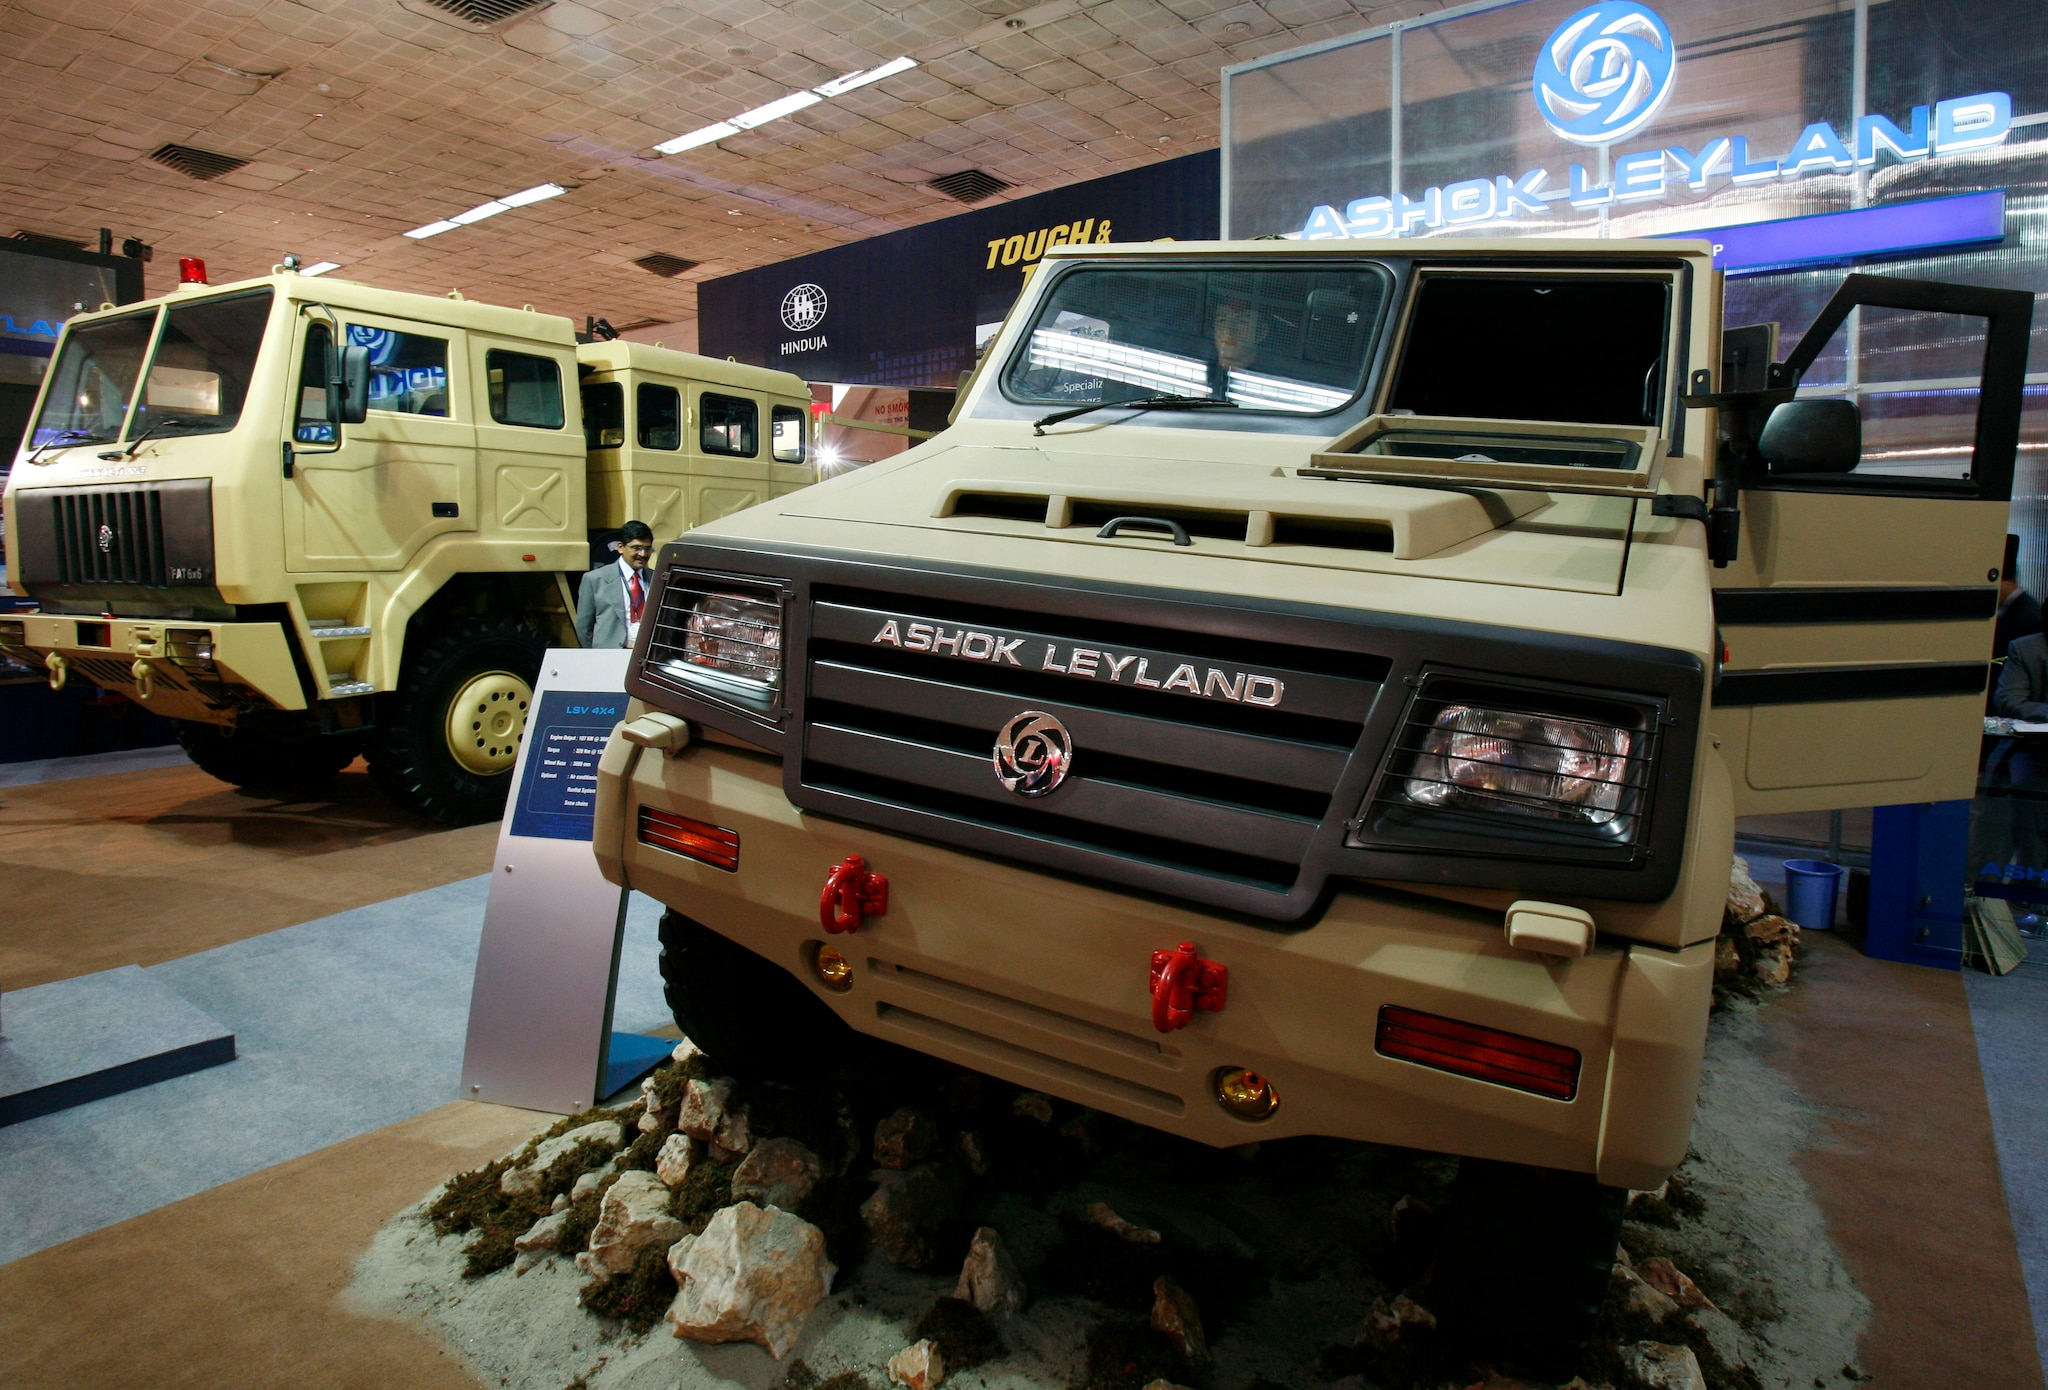 Ashok Leyland: Ashok Leyland: The company's plant at Pantnagar will remain closed from July 16 to July 24, owning to weak demand and outlook for the industry. (Image: Reuters)